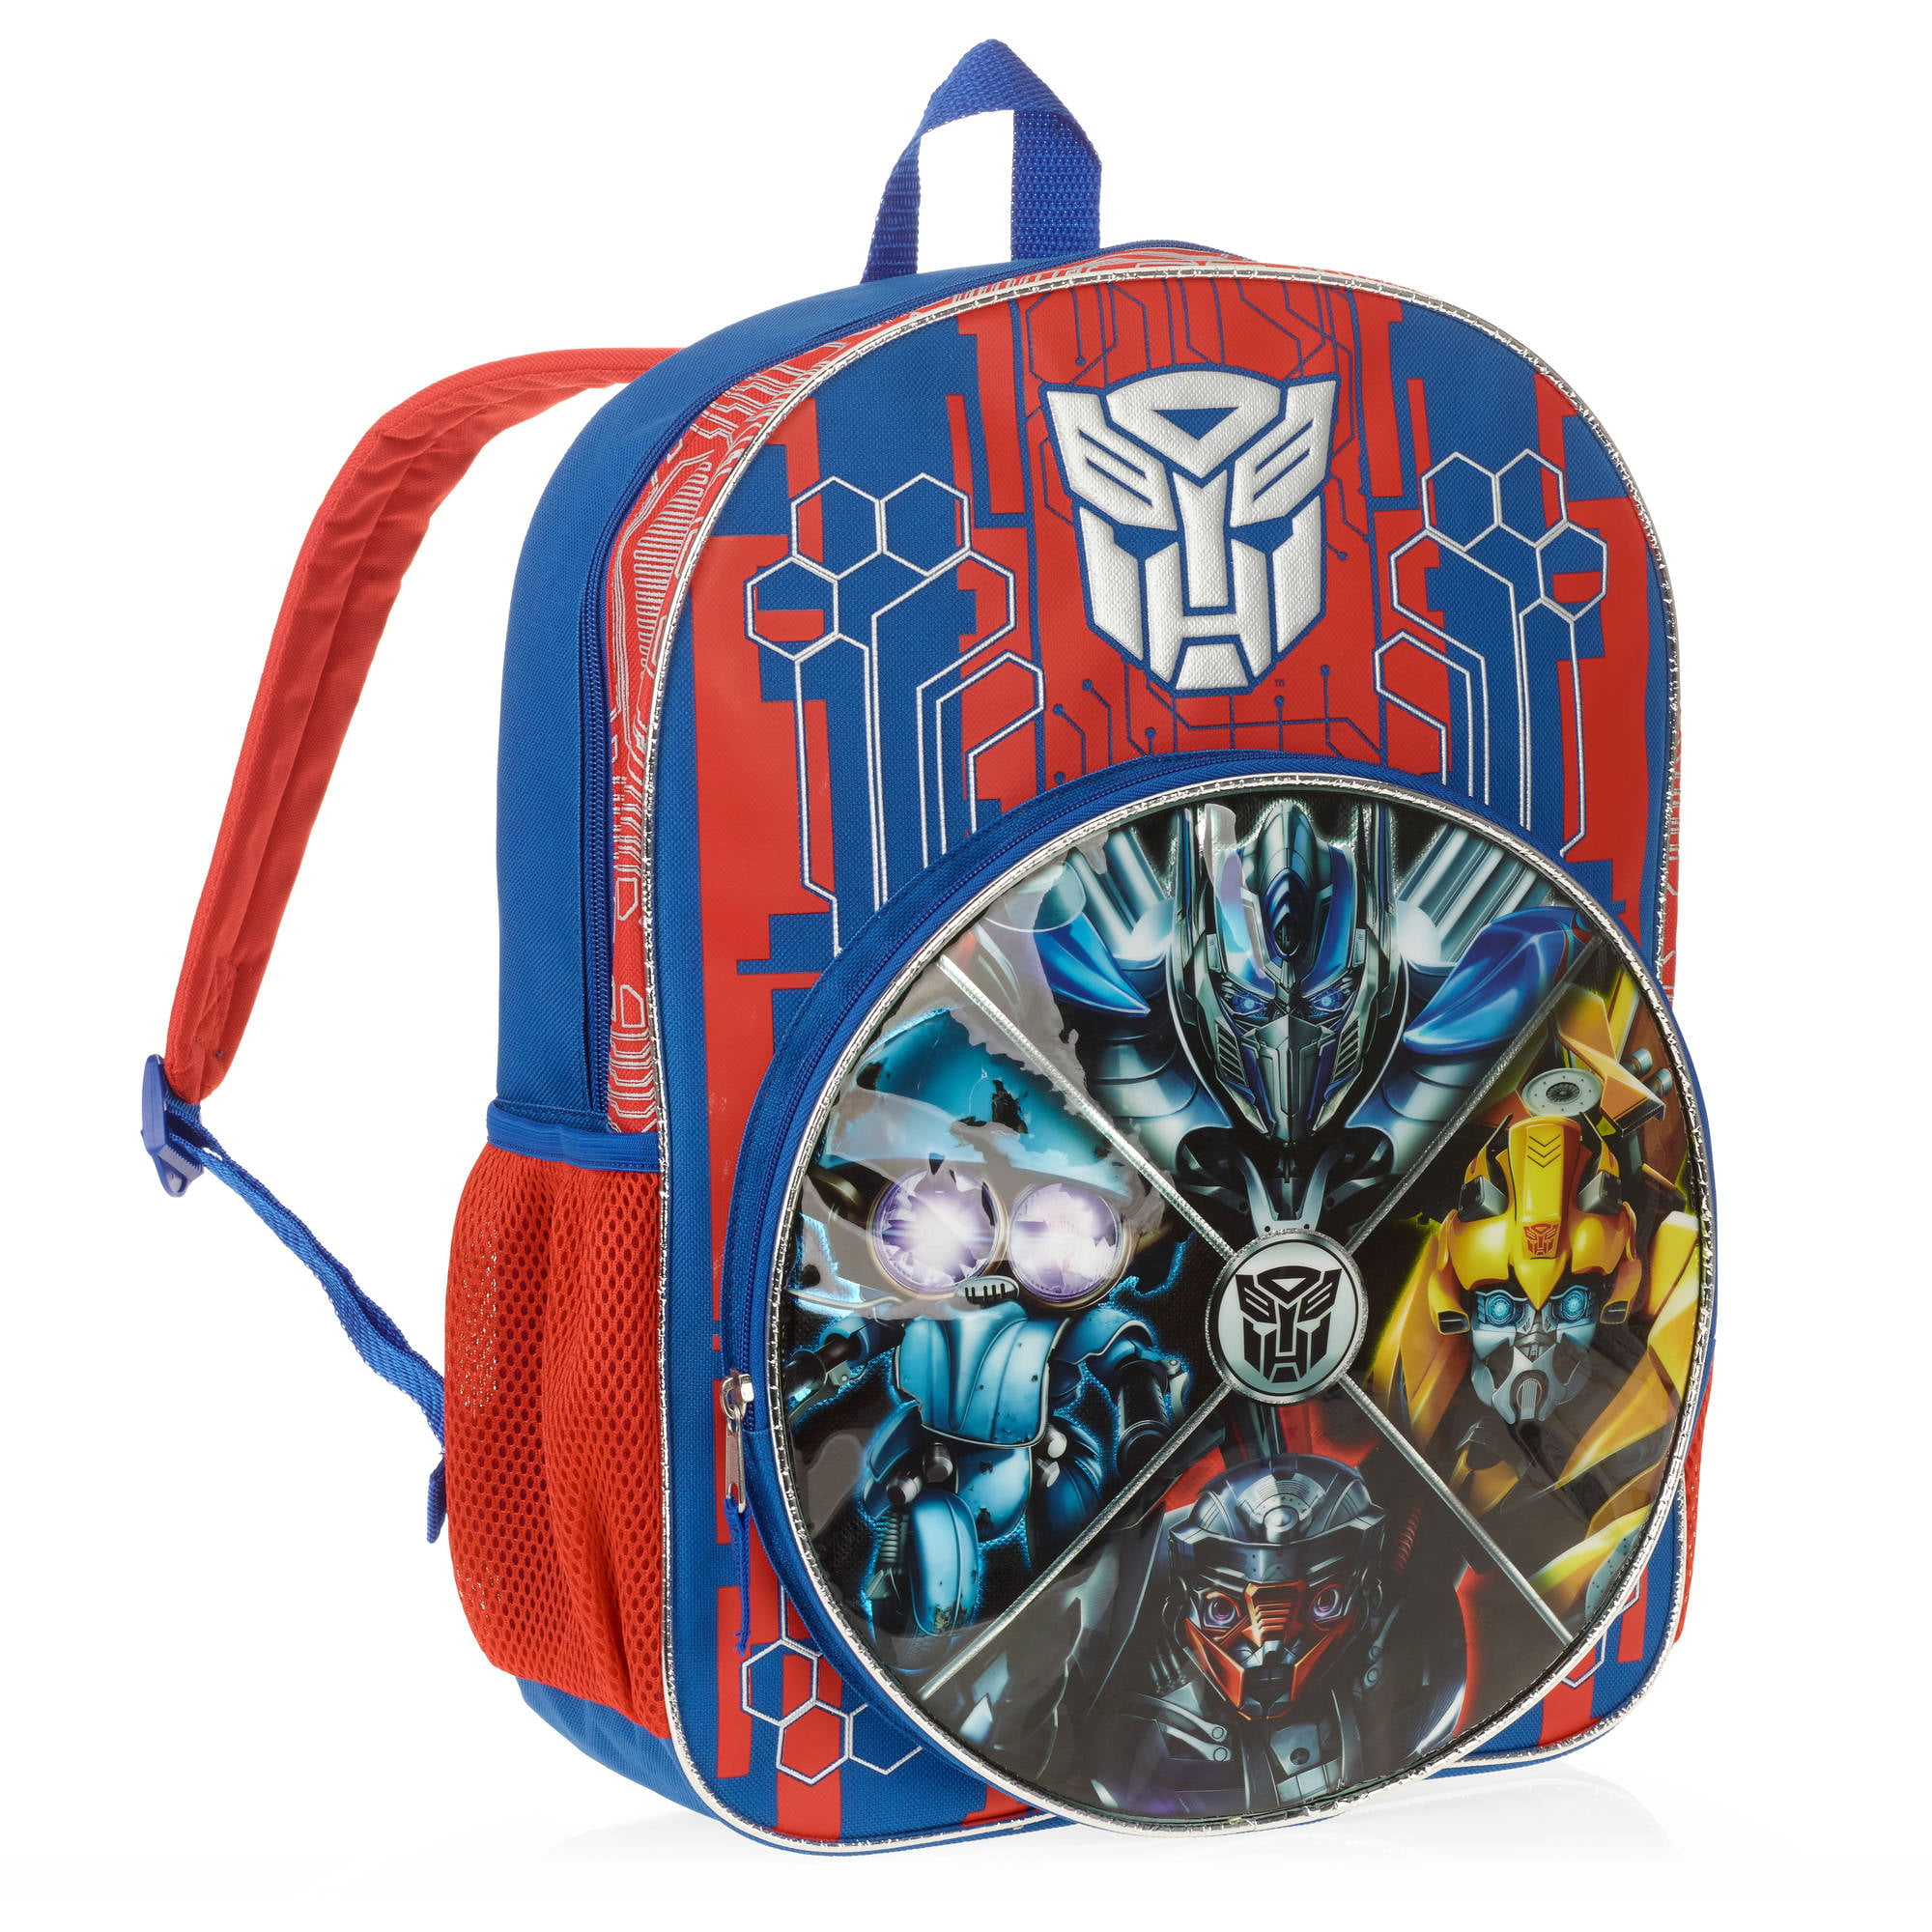 "Transformers Movie 5 Backpack, 16"" by Generic"